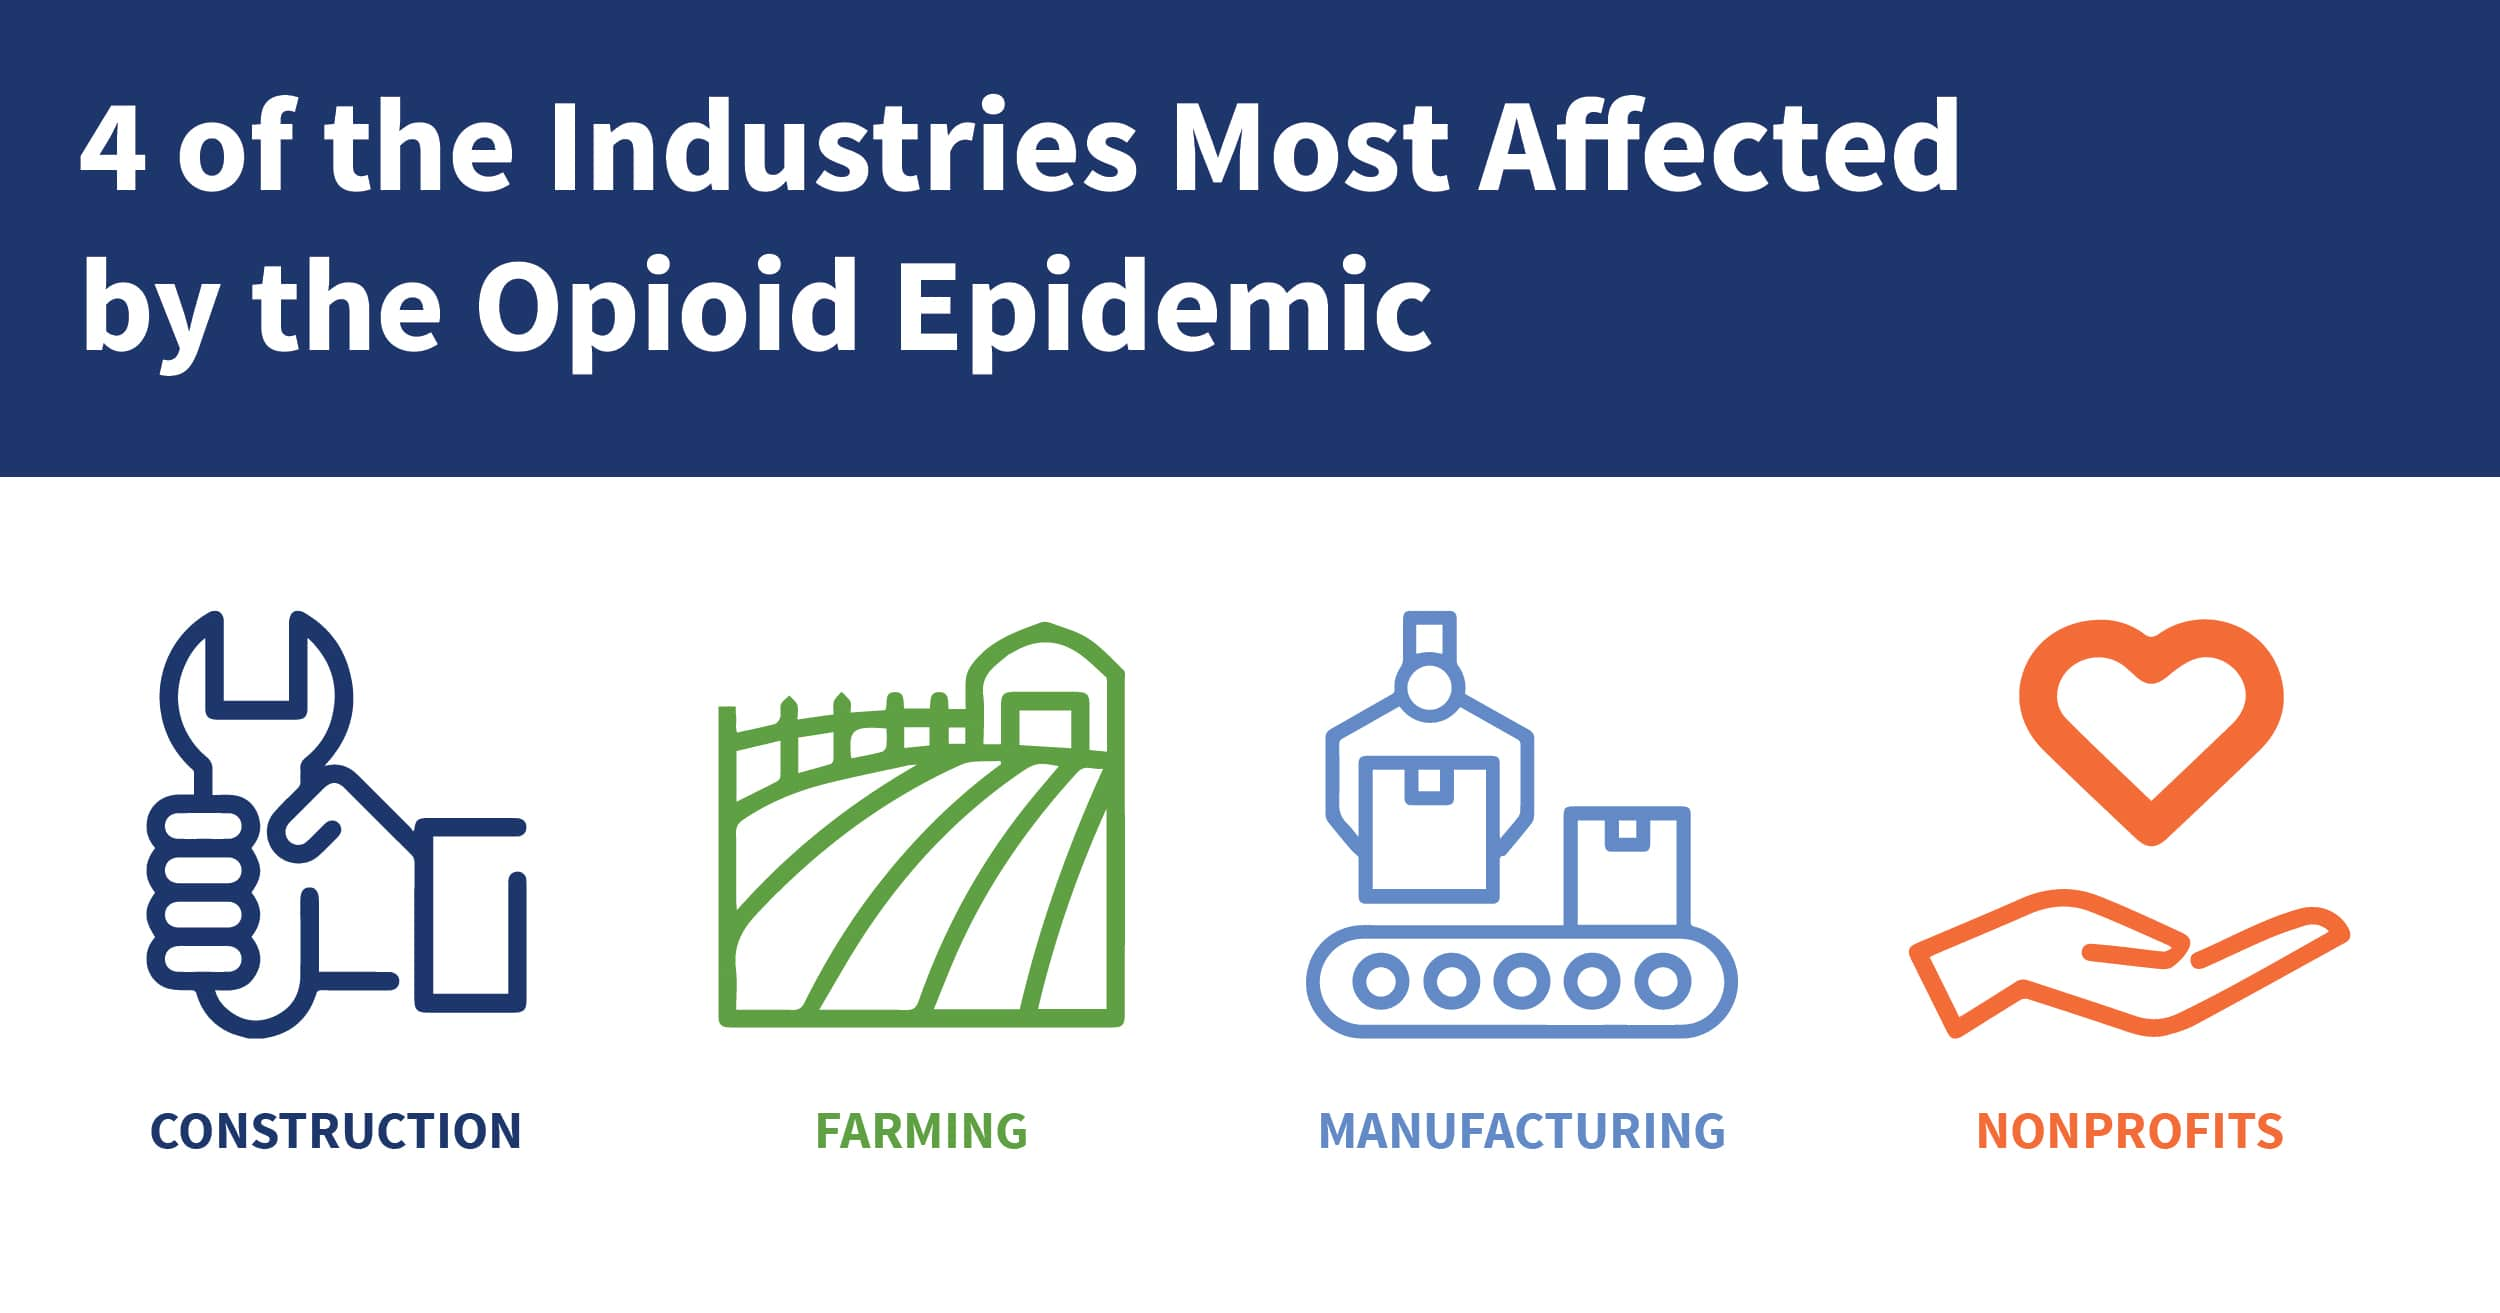 The Industries Most Affected by the Opioid Epidemic